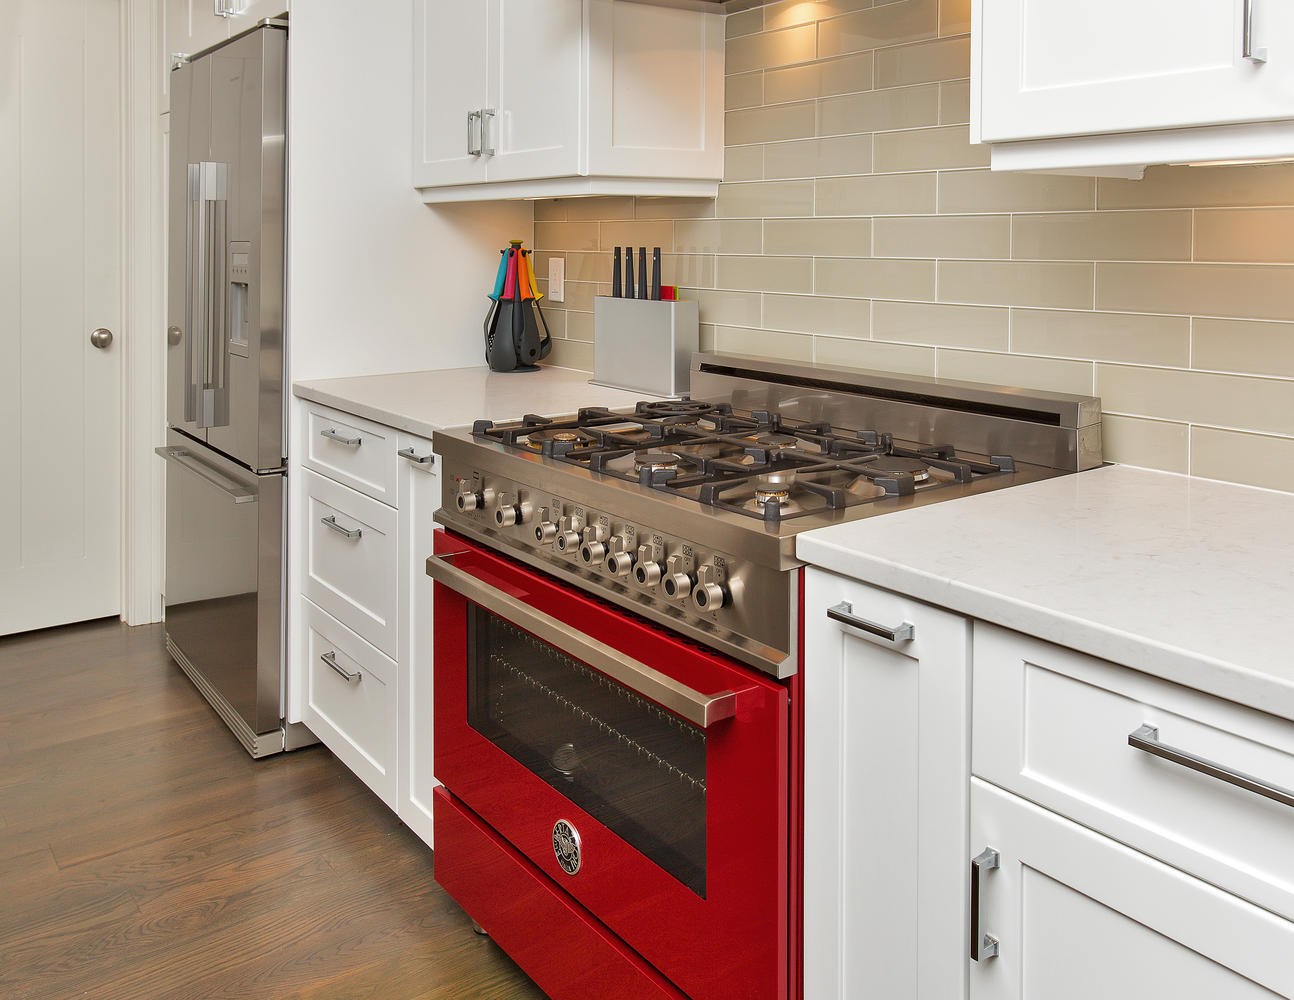 Uncategorized Kitchen Appliances New Jersey clean and contemporary kitchen manasquan new jersey by design line red range idea